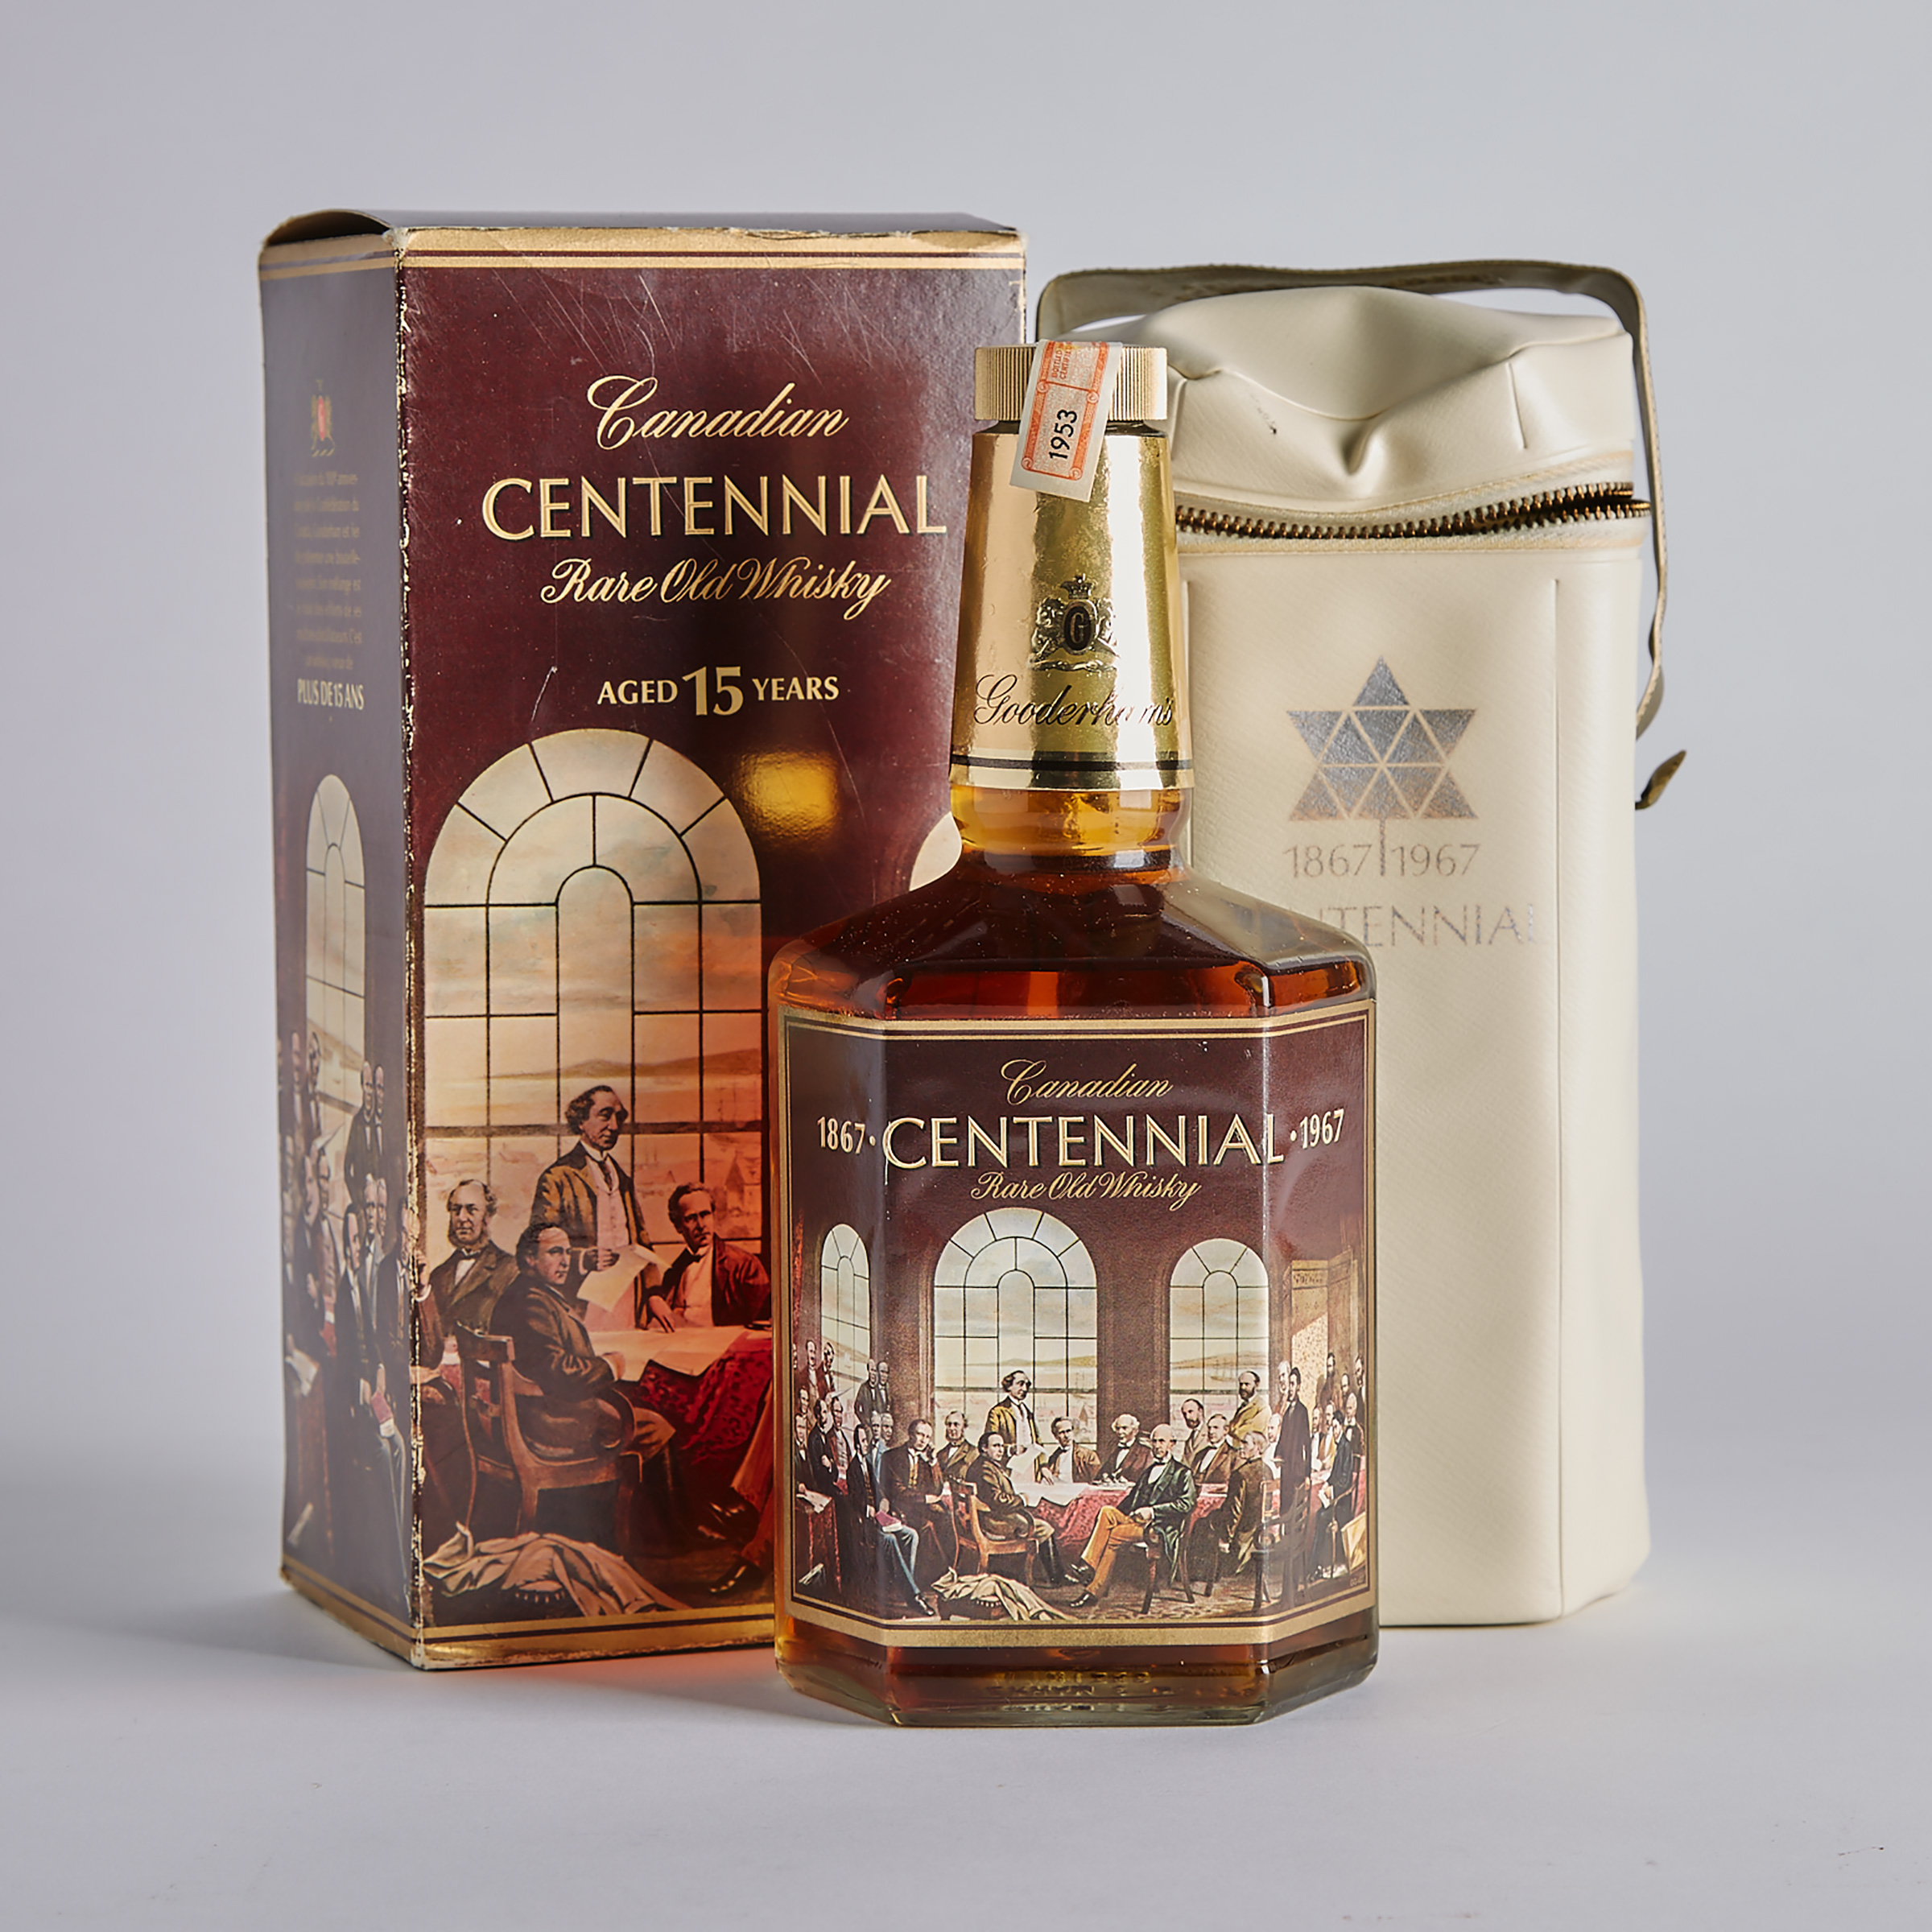 GOODERHAM'S CANADIAN CENTENNIAL RARE OLD WHISKY 15 YRS (ONE 25 FL OZ)